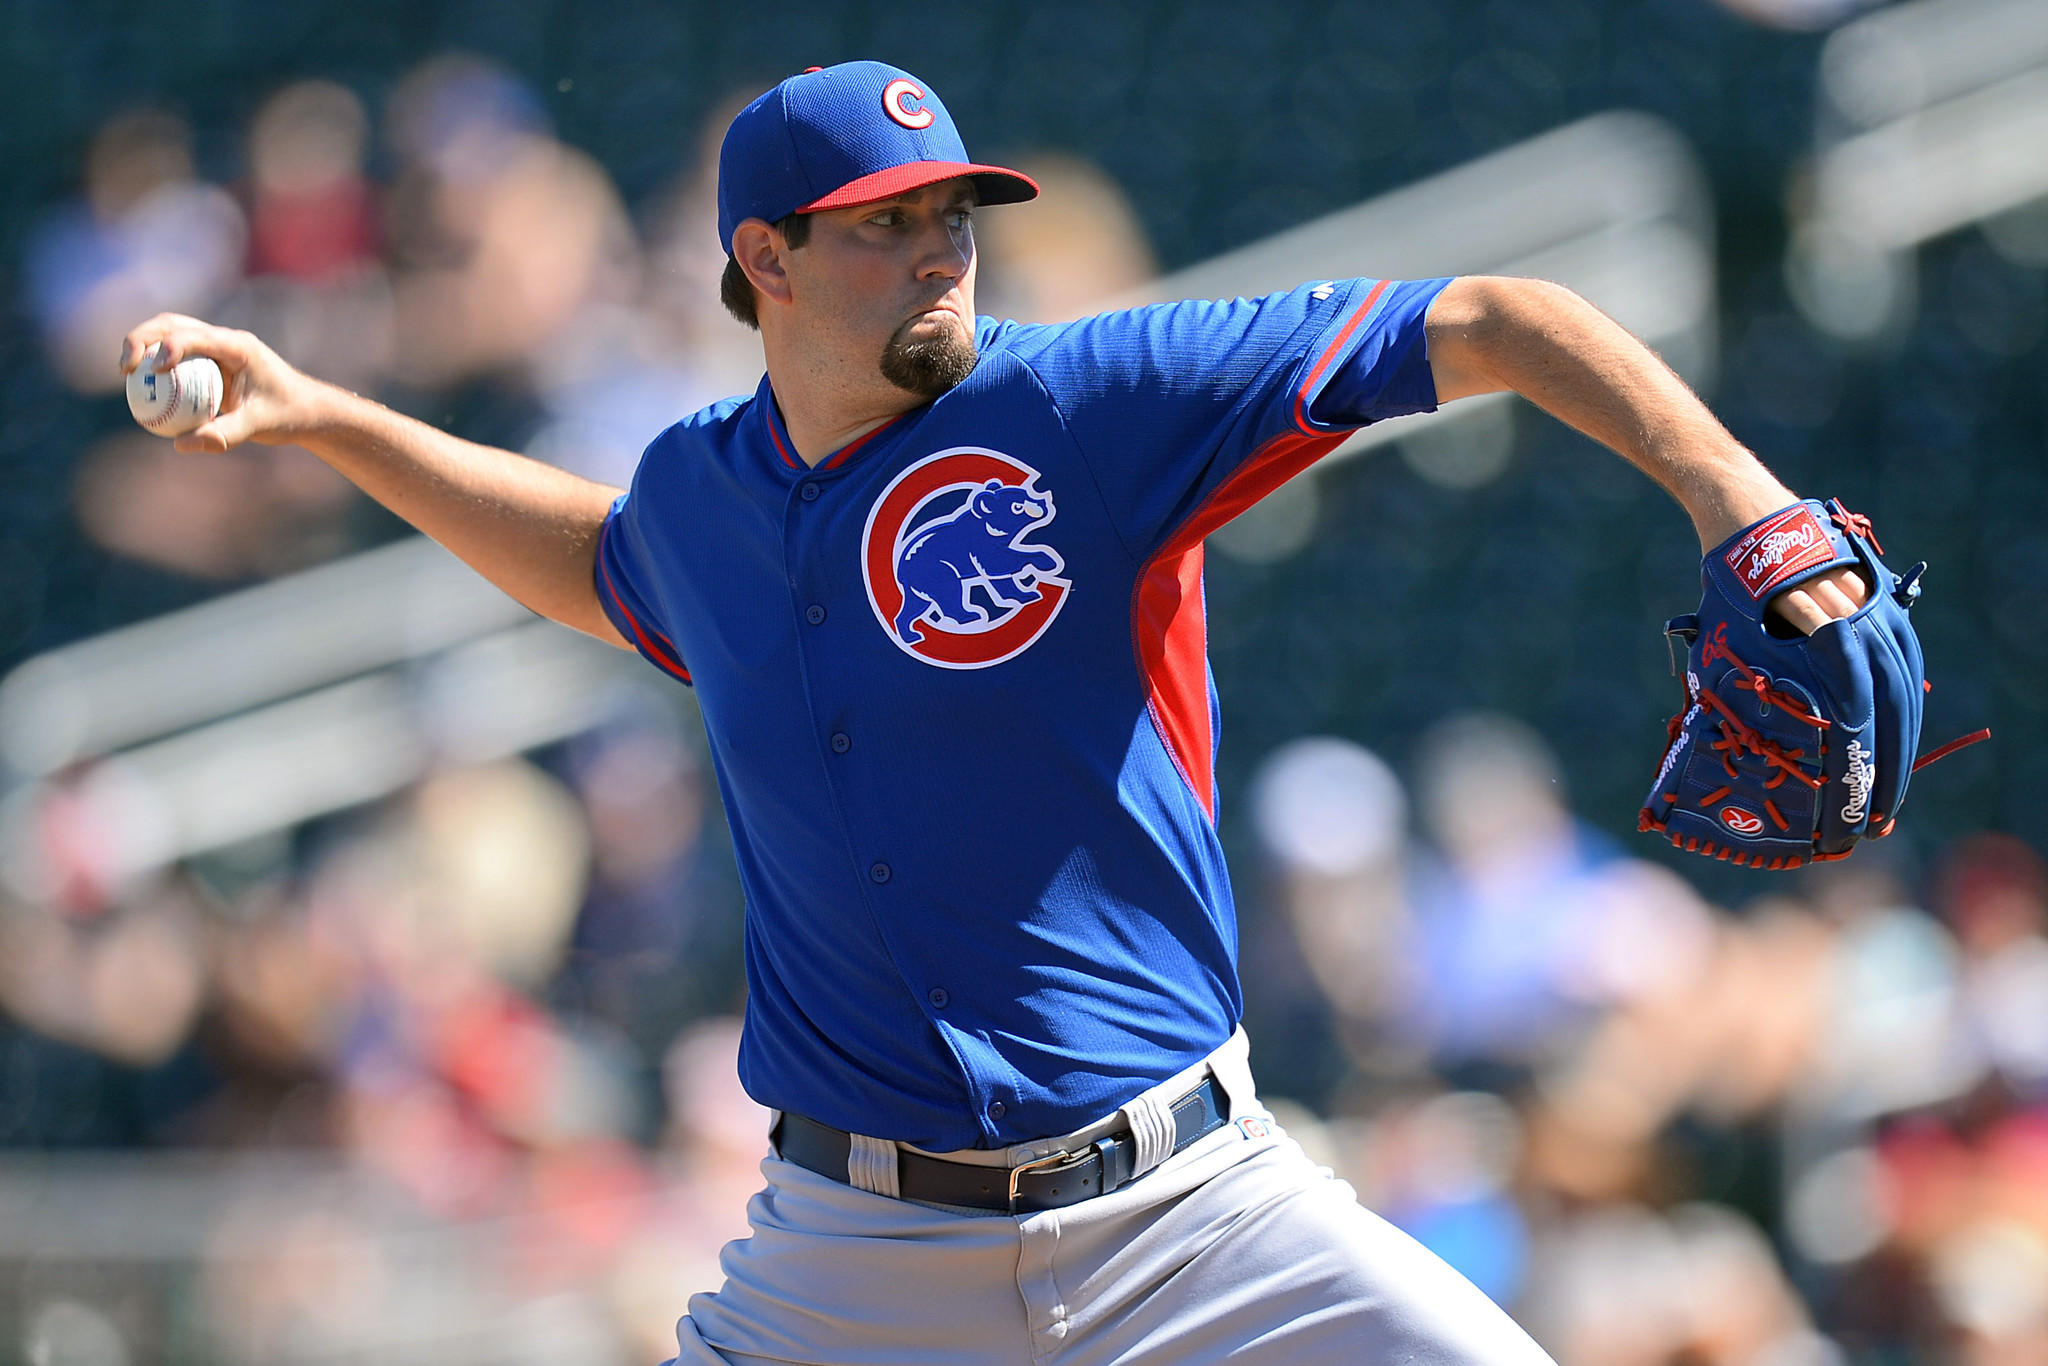 Chicago Cubs starting pitcher Jason Hammel (39) pitches against the Cincinnati Reds at Goodyear Ballpark.